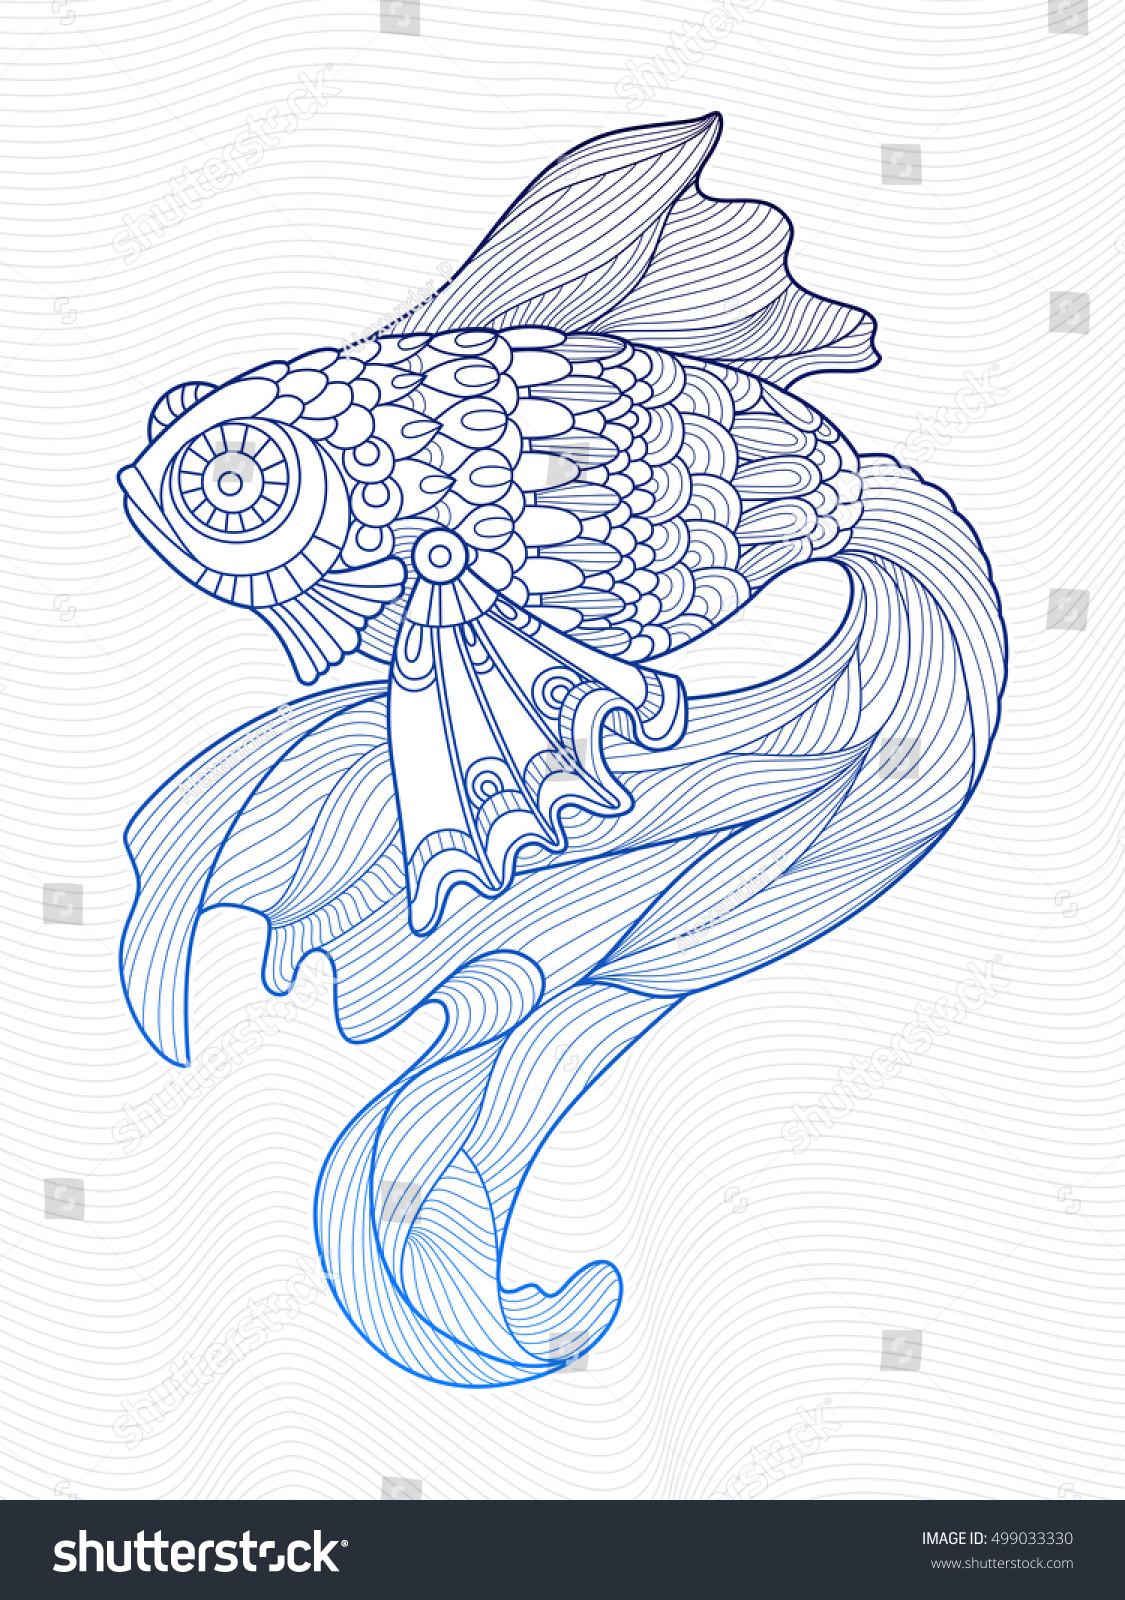 Gold Fish Coloring Book For Adults Raster Illustration Anti Stress Adult